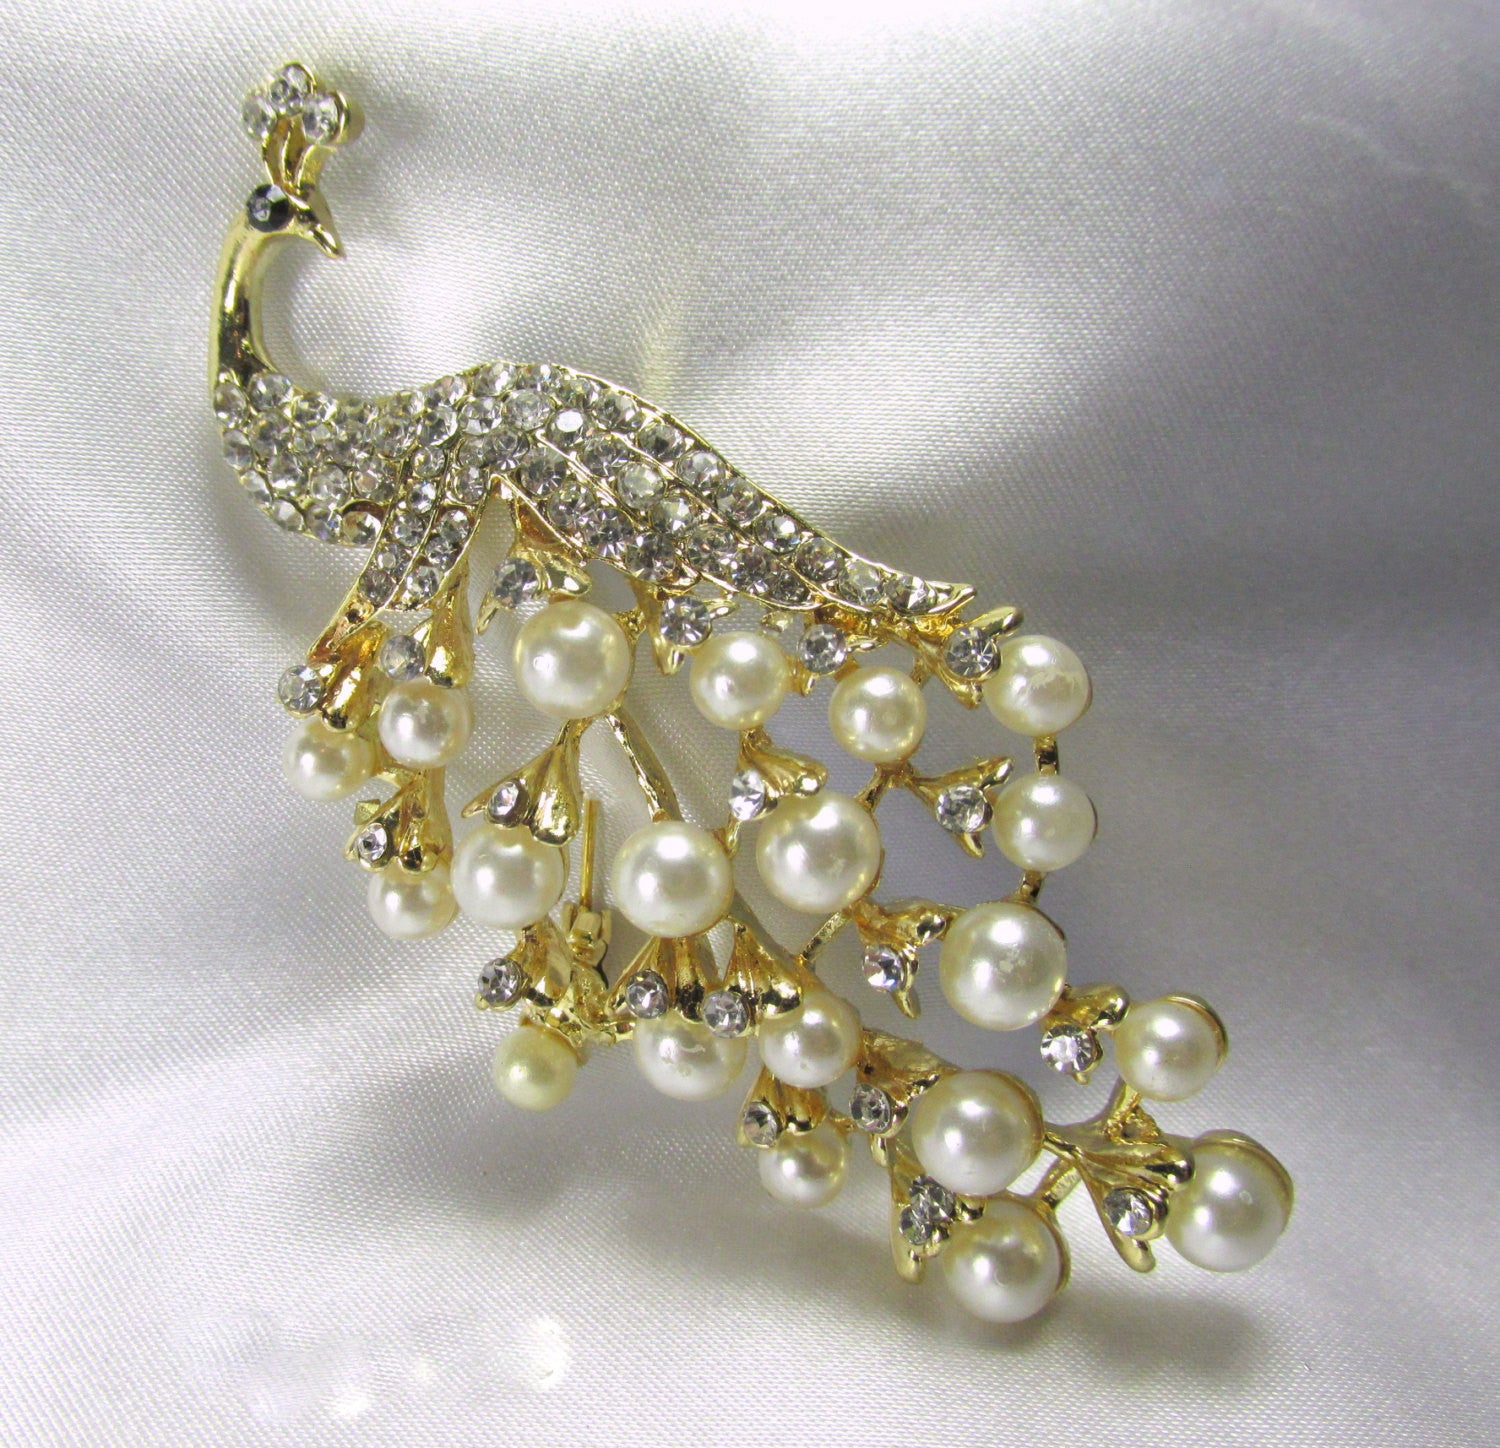 Peacock Brooch with White Pearls and Clear Crystals in Gold - Odyssey Cache - 3